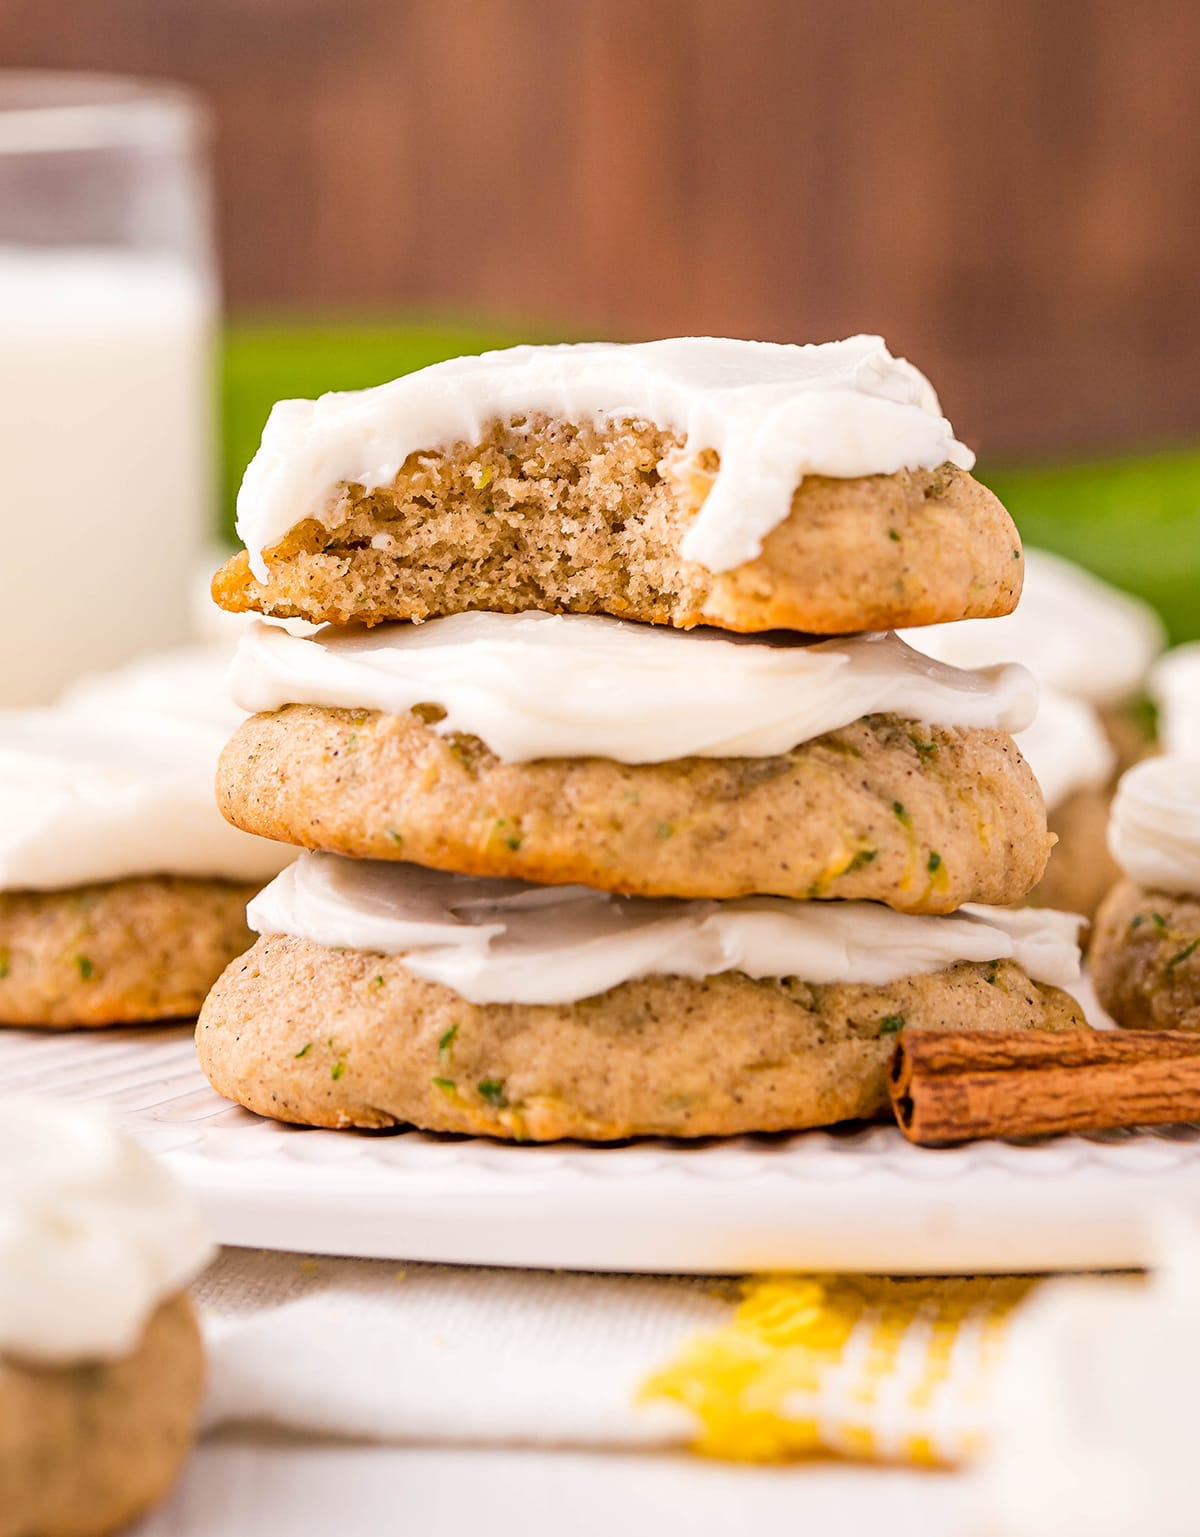 A stack of three zucchini cookies, and the top cookie has a bite out of it. The cookies are topped with cream cheese frosting.